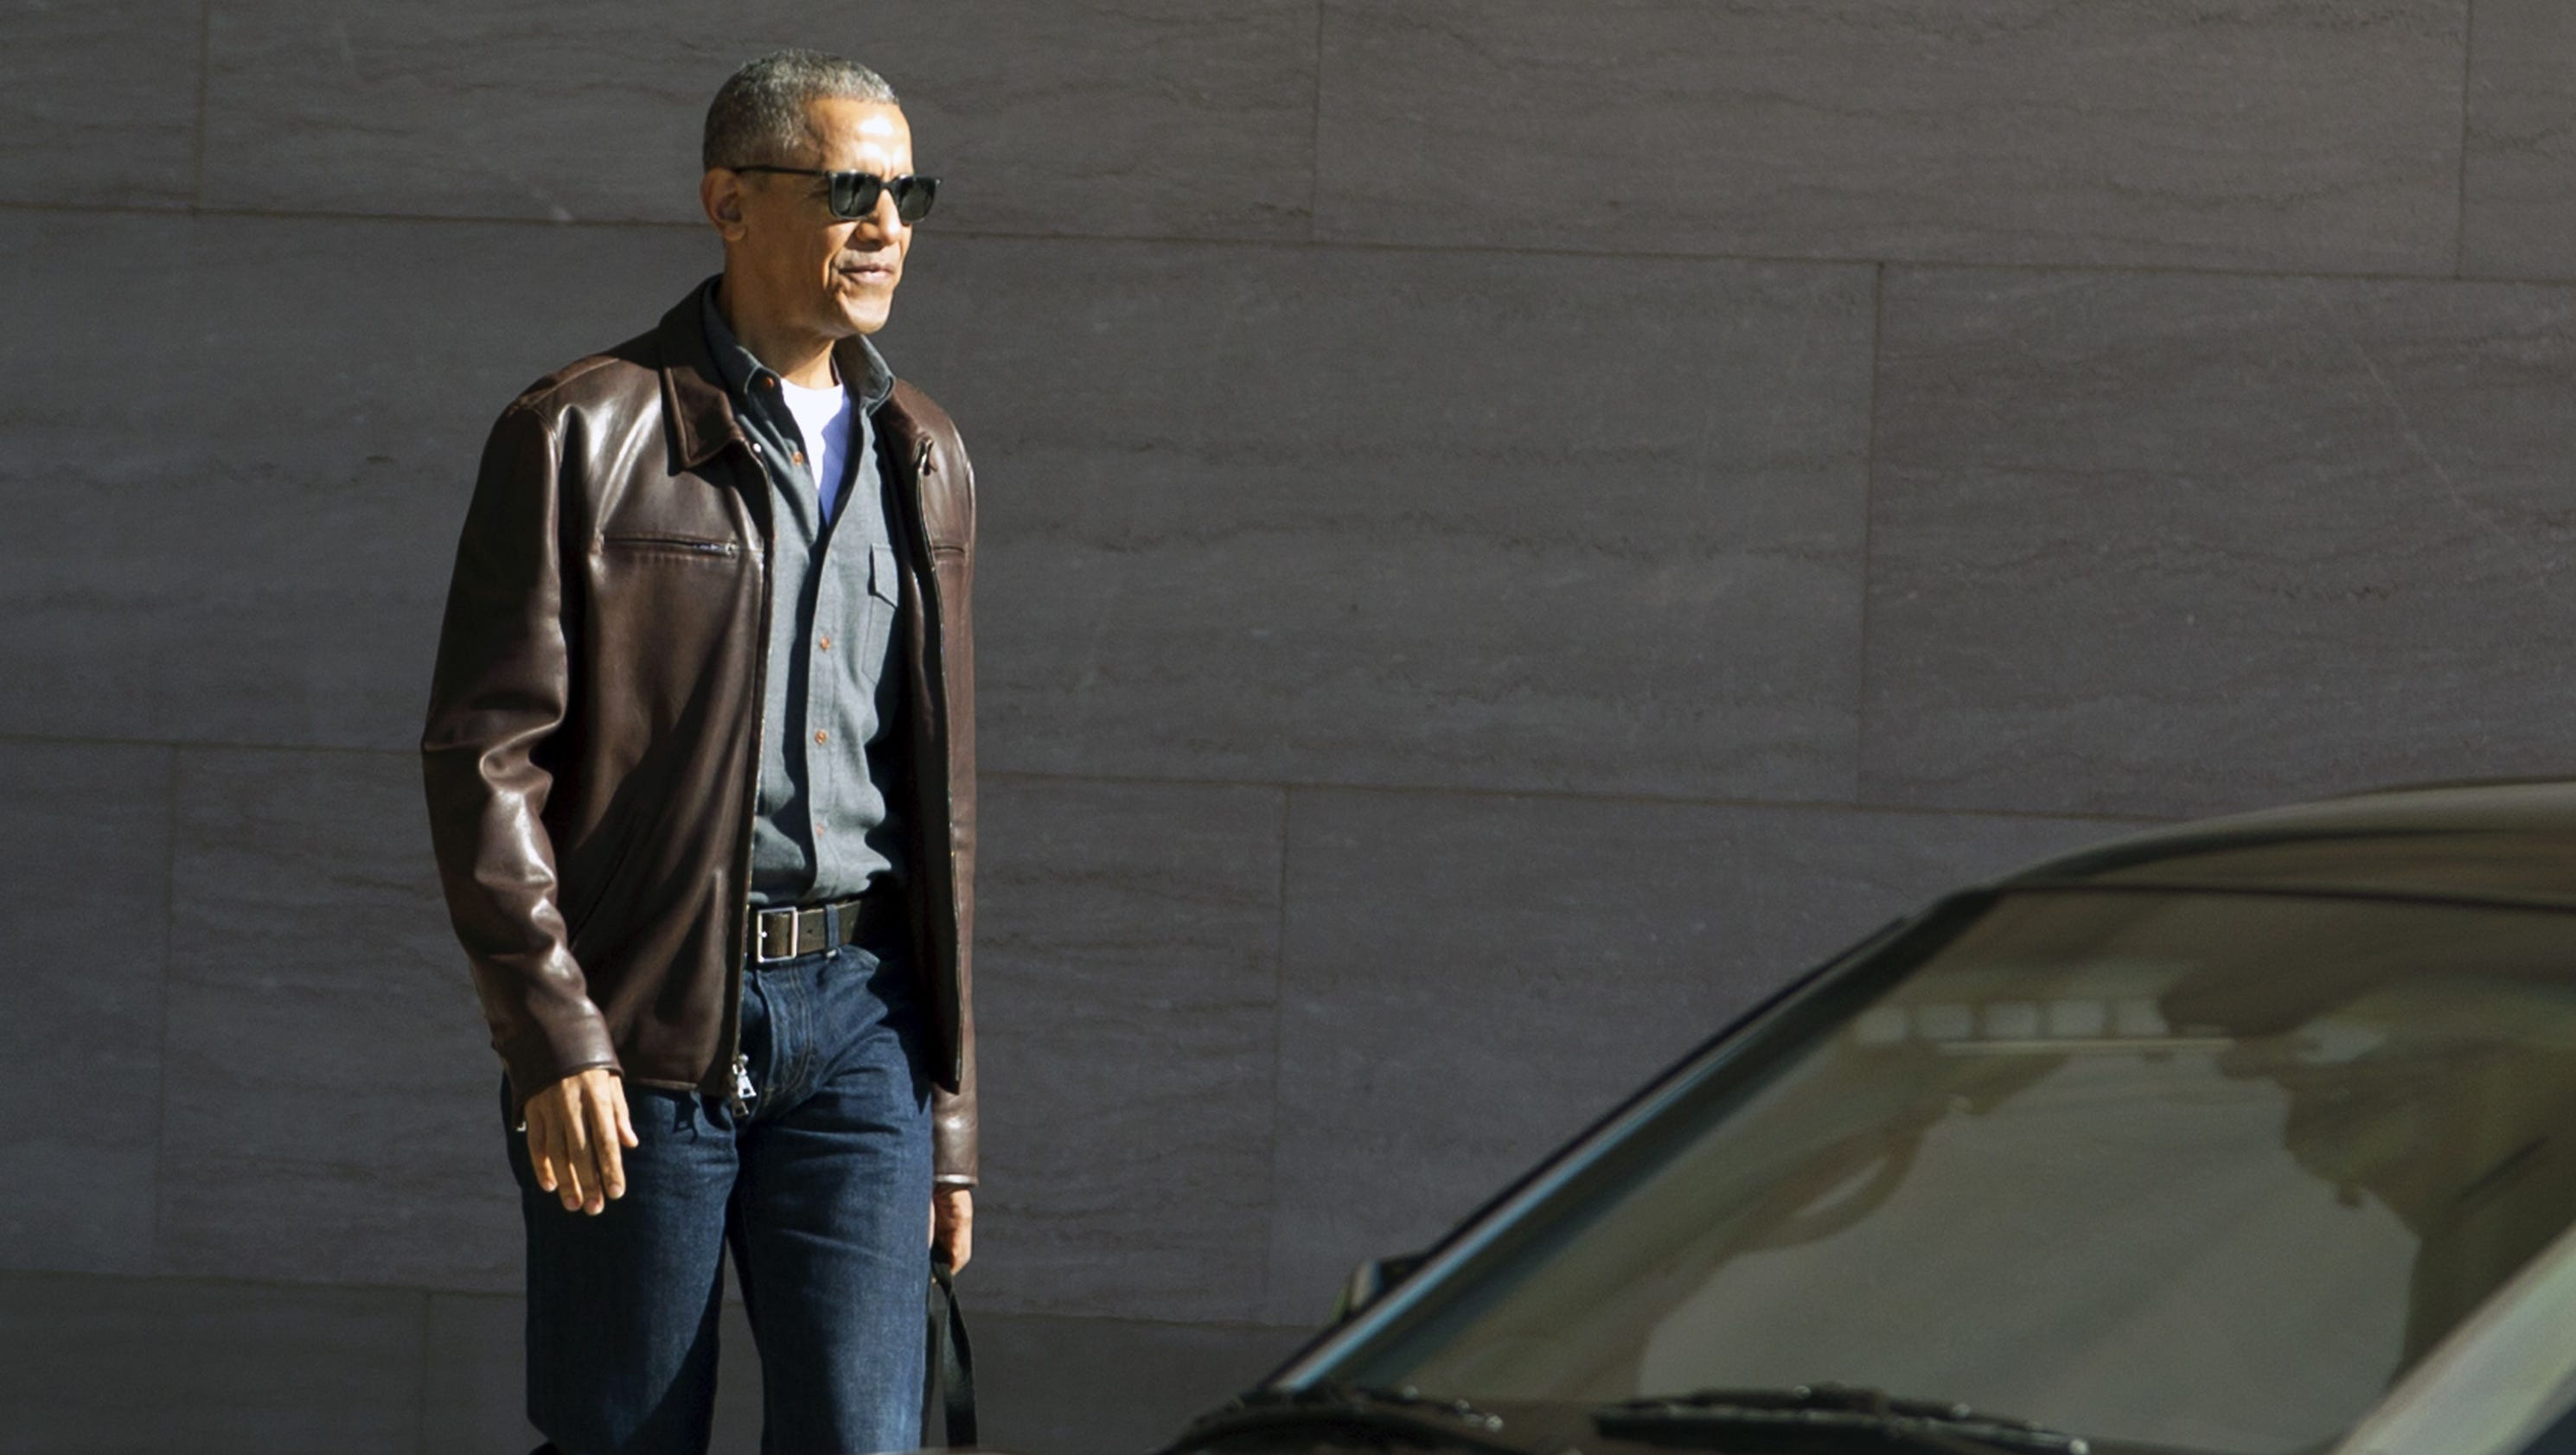 After three-month vacation, Obama to return to public eye